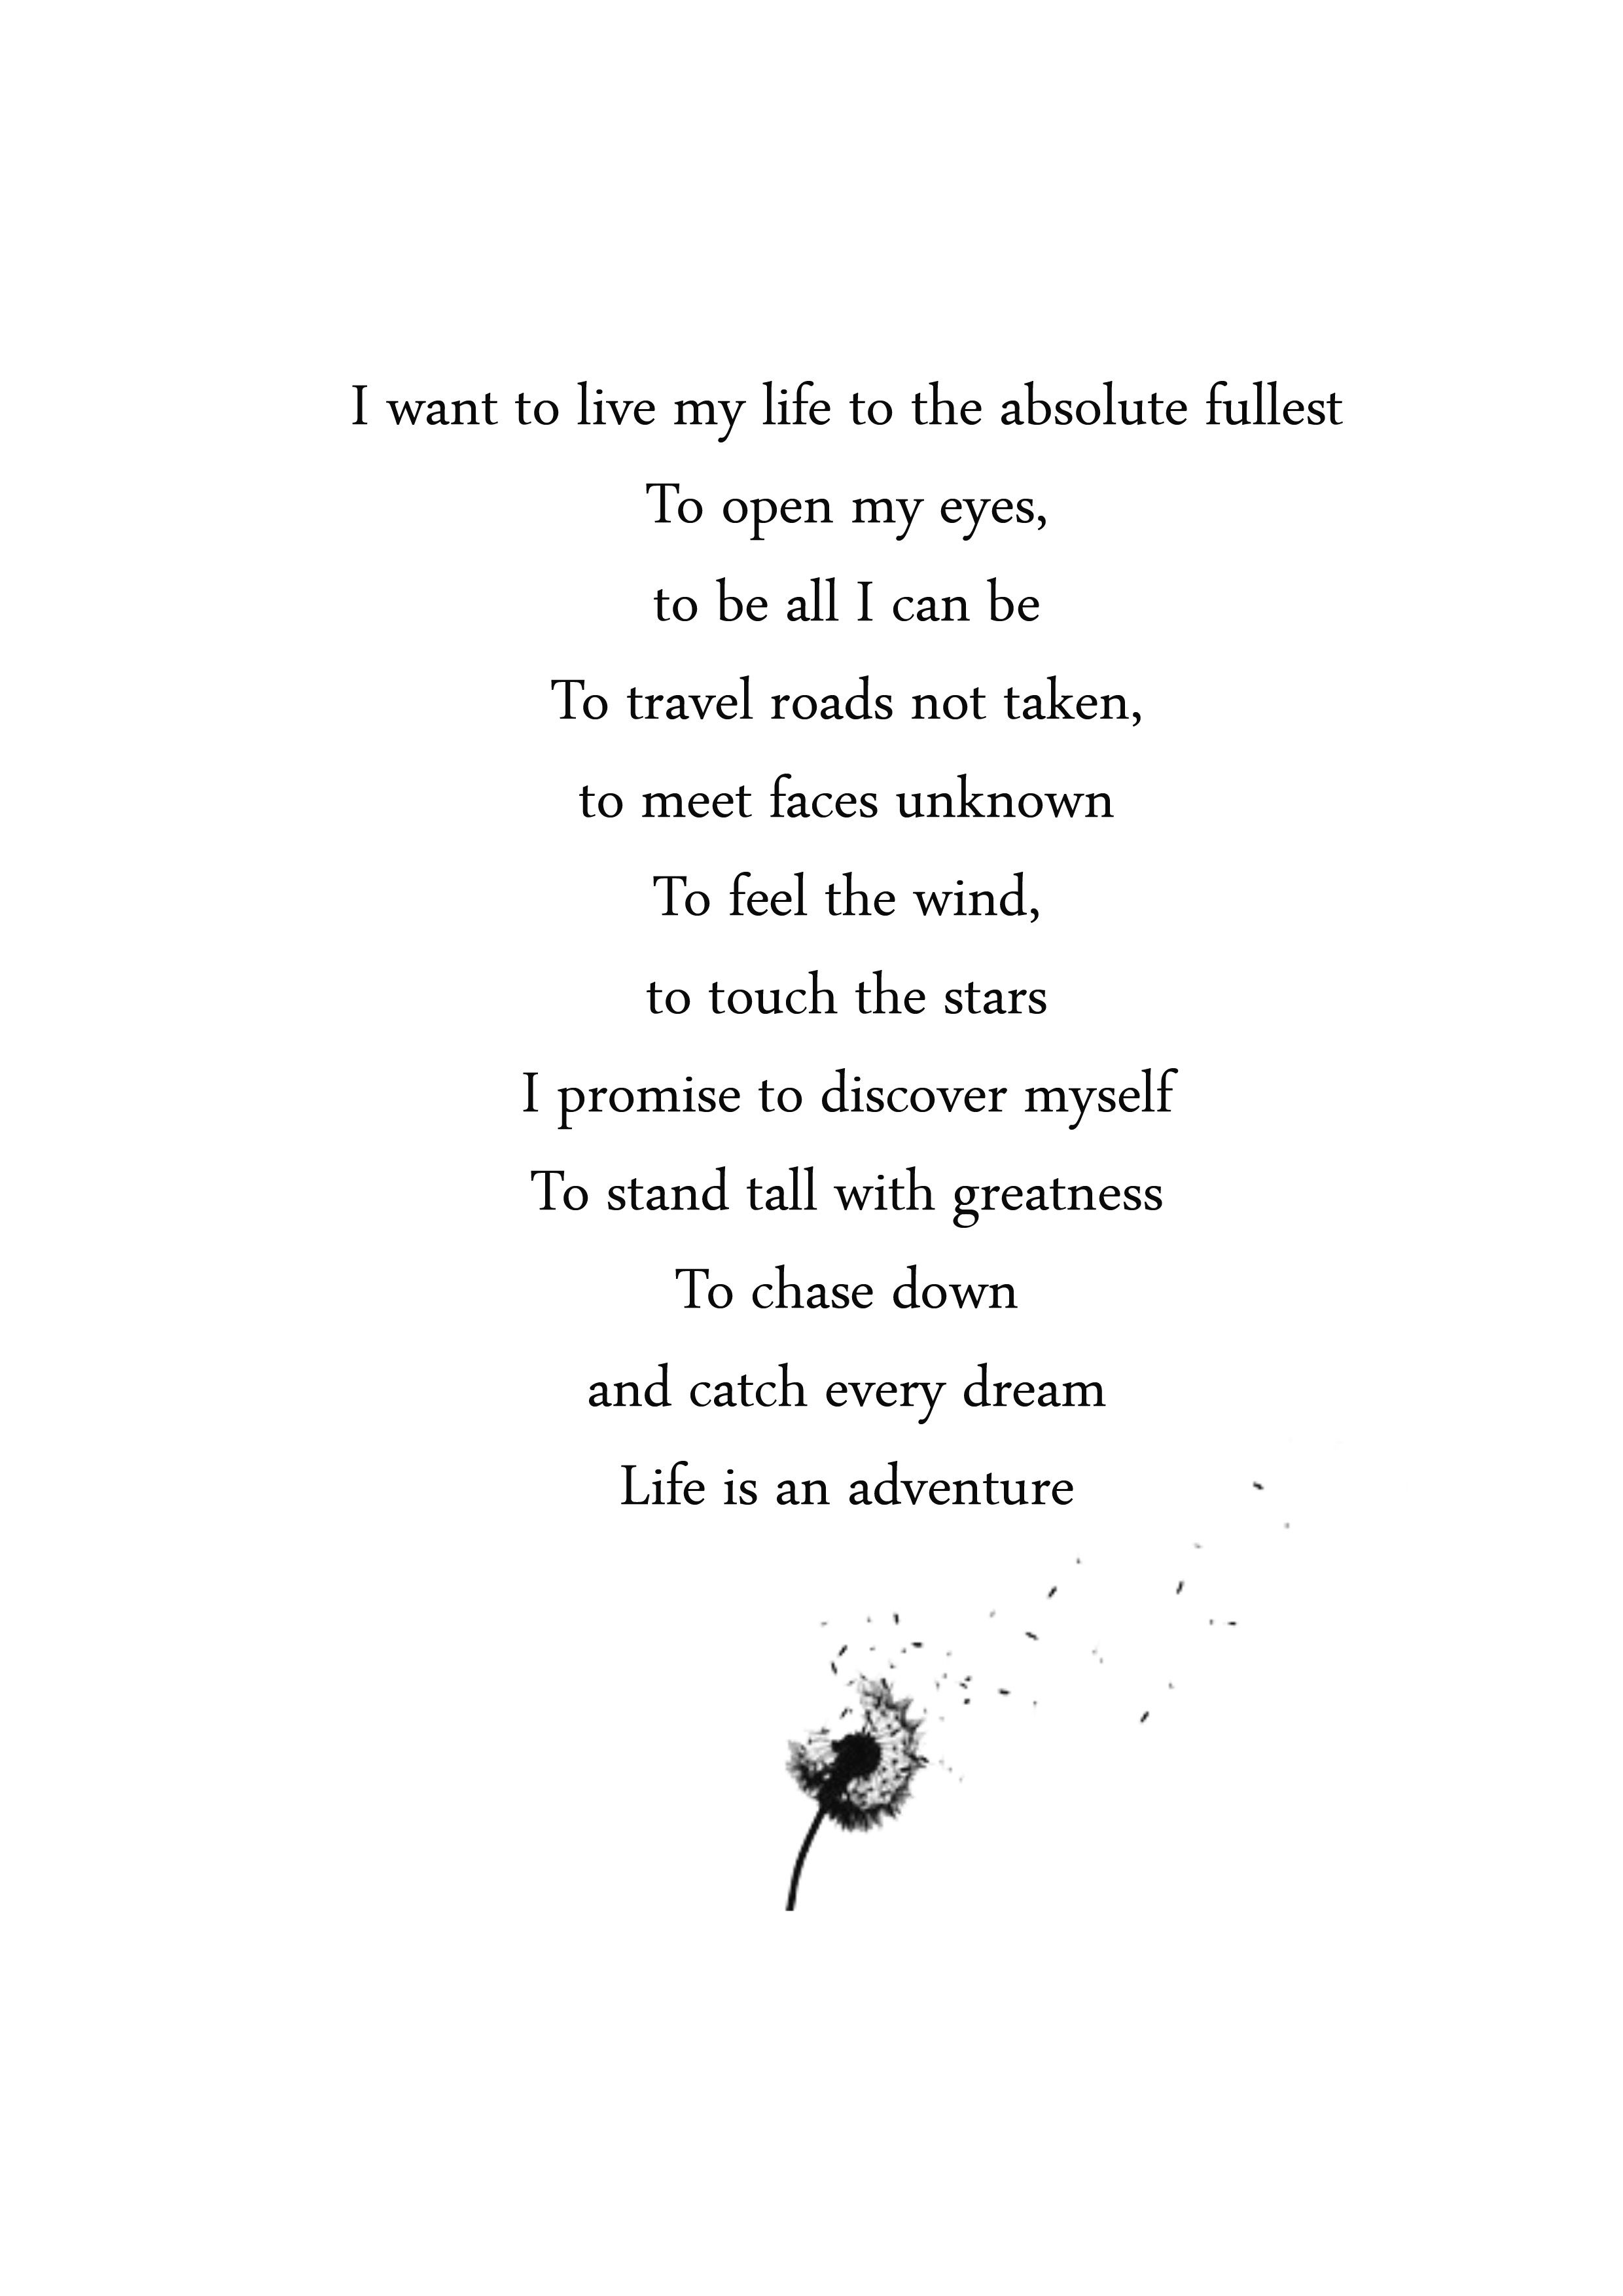 I Want To Live My Life To The Absolute Fullest